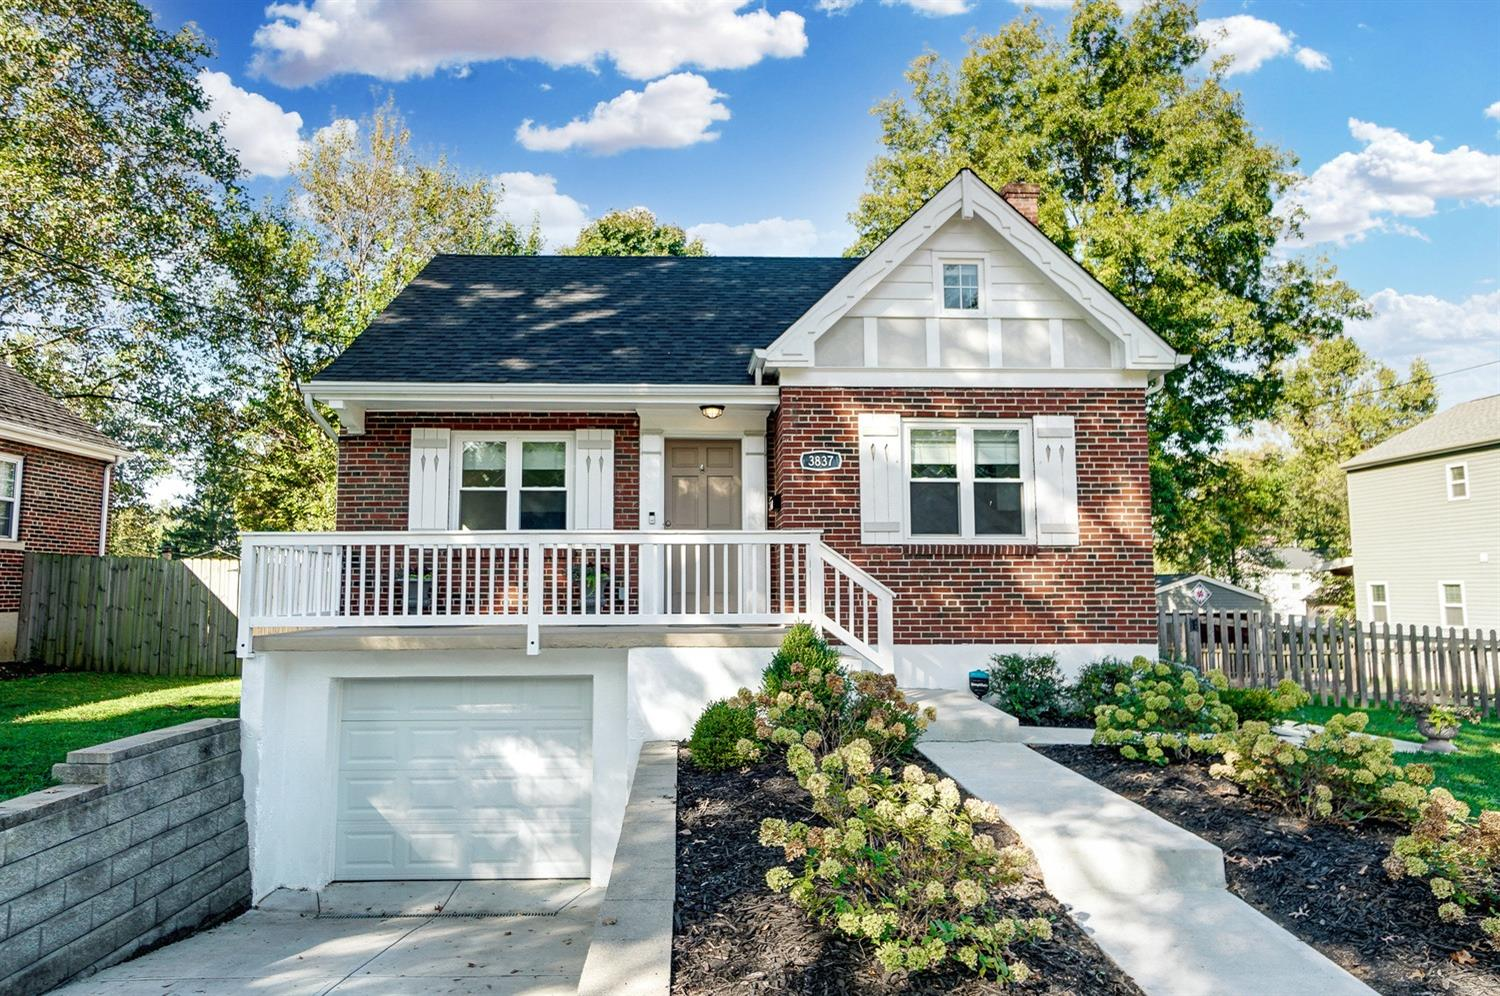 3837 Belmont Avenue, Fairfax, Ohio 45227, 3 Bedrooms Bedrooms, 7 Rooms Rooms,2 BathroomsBathrooms,Single Family Residence,For Sale,Belmont,1719085